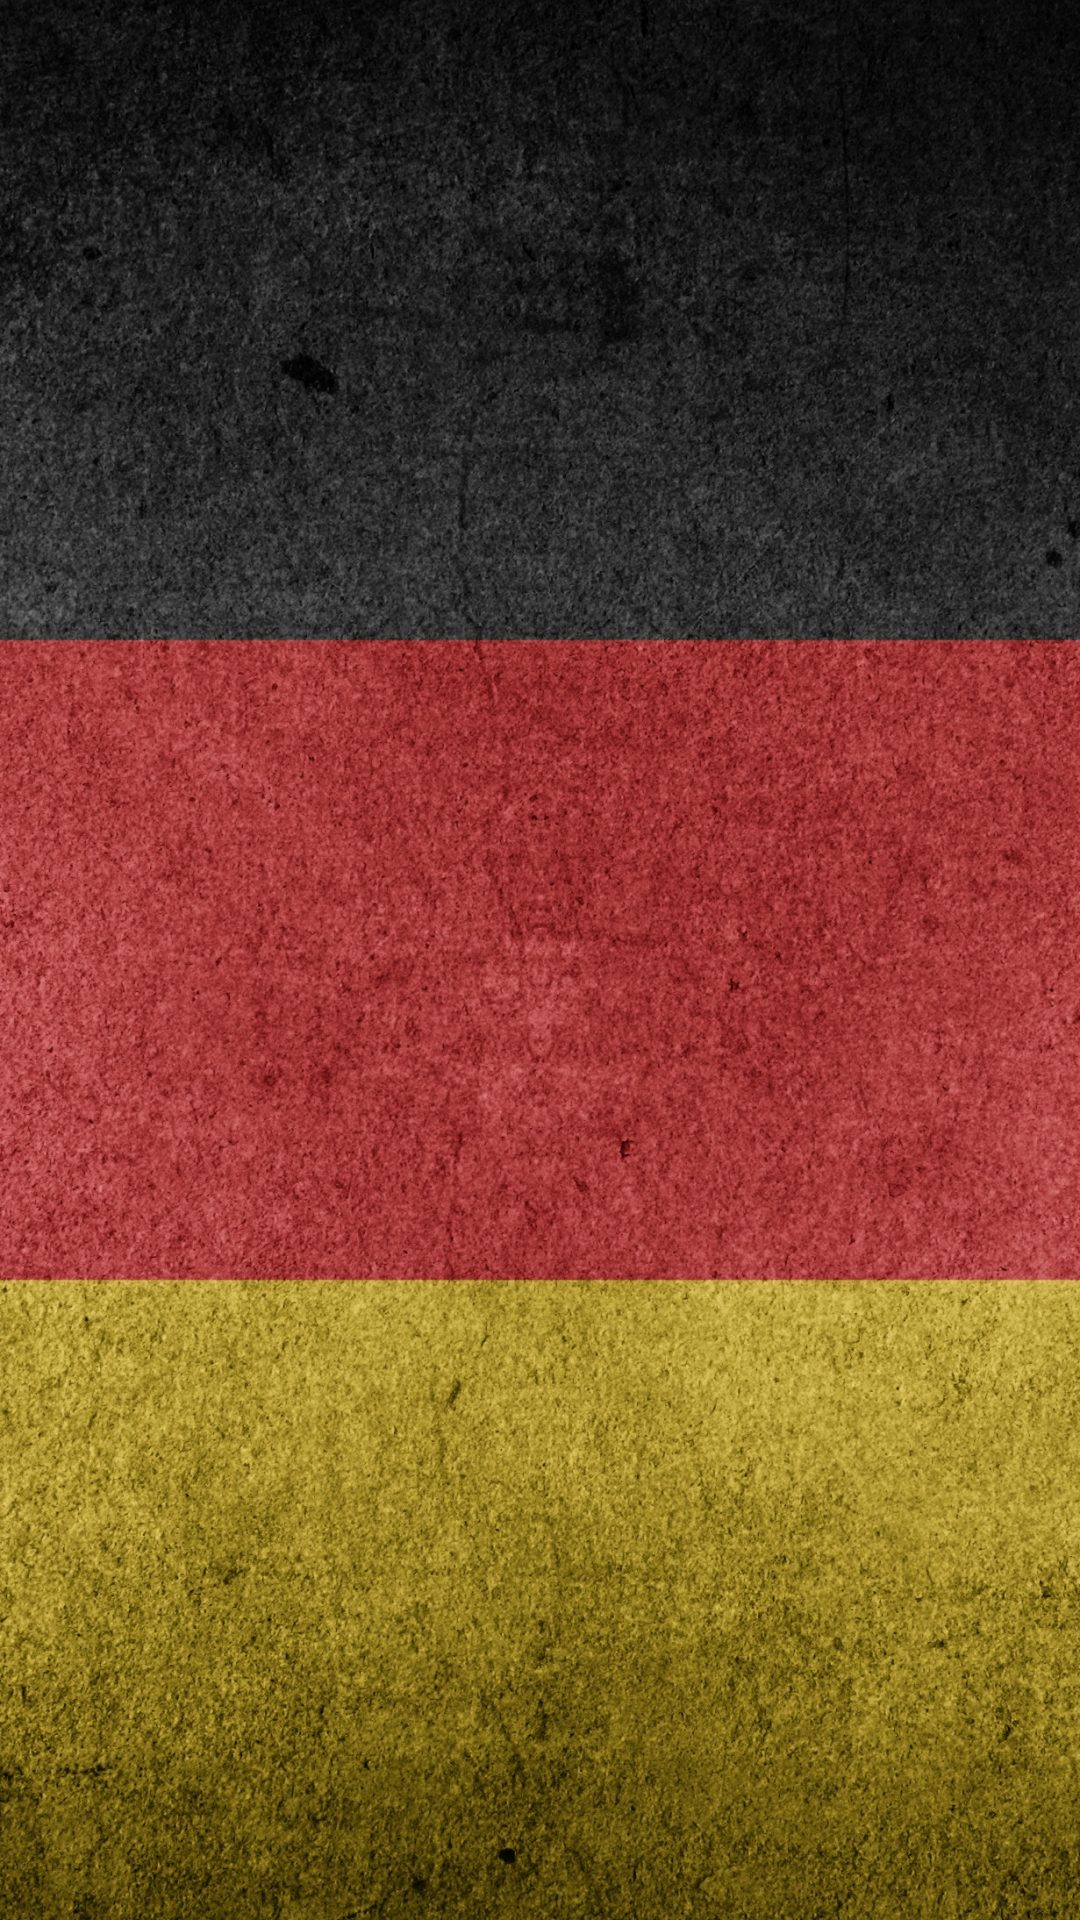 The Flag Of Germany Grunge HD Wallpaper